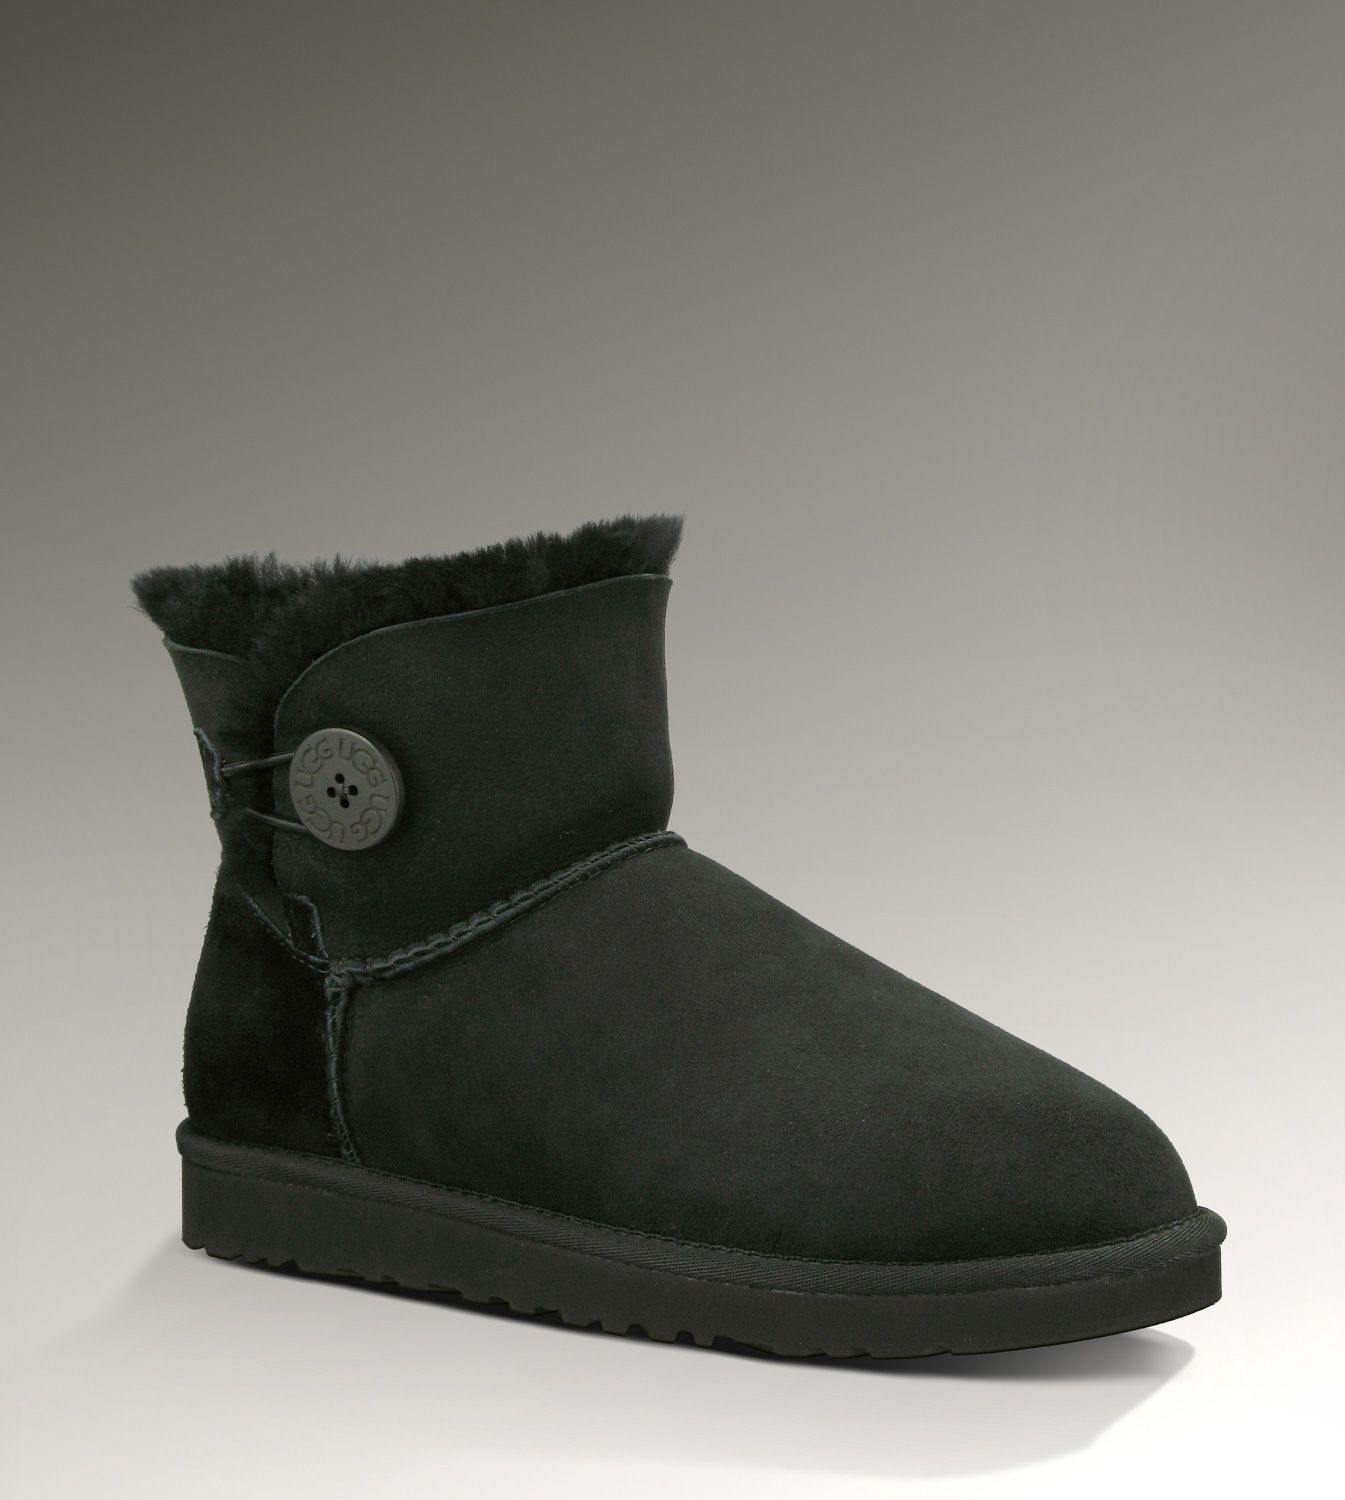 ugg bailey button mini 3352 boots boots uggs ugg boots boots rh pinterest com